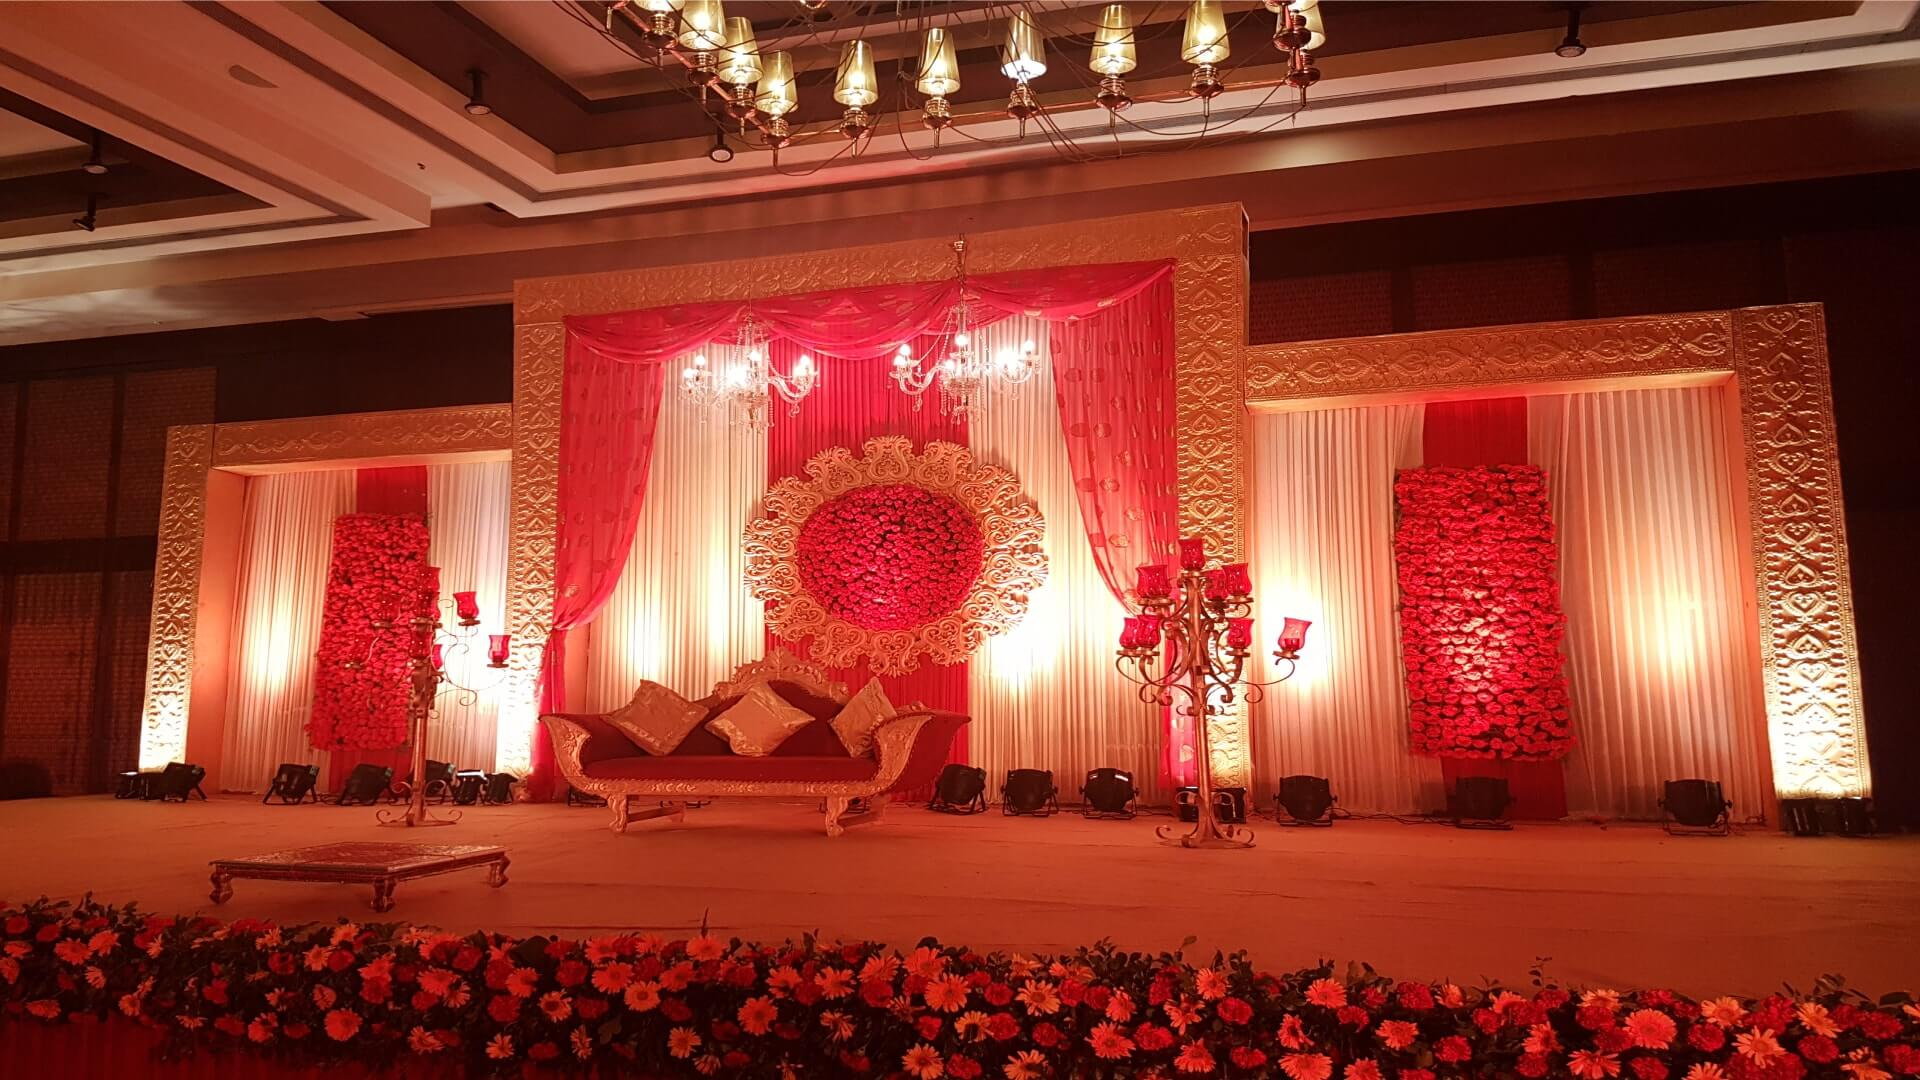 Home wedding planner dream day wedding planners in jaipur one stop solutions for wedding management service we make your day special junglespirit Images